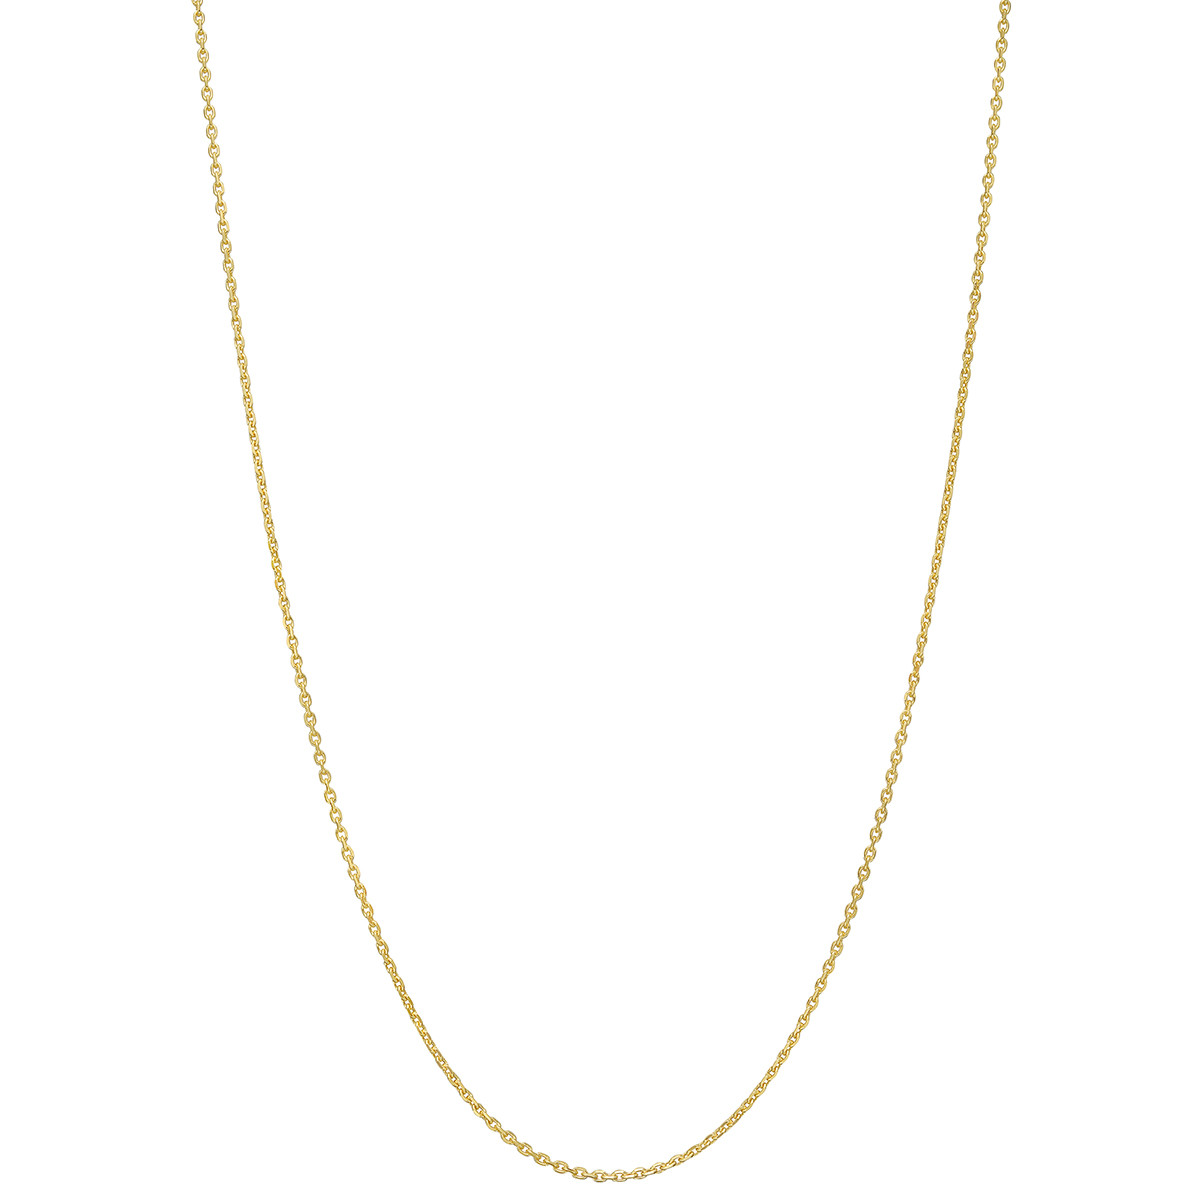 "18k Yellow Gold Thin Diamond-Cut Link Chain Necklace (18"")"